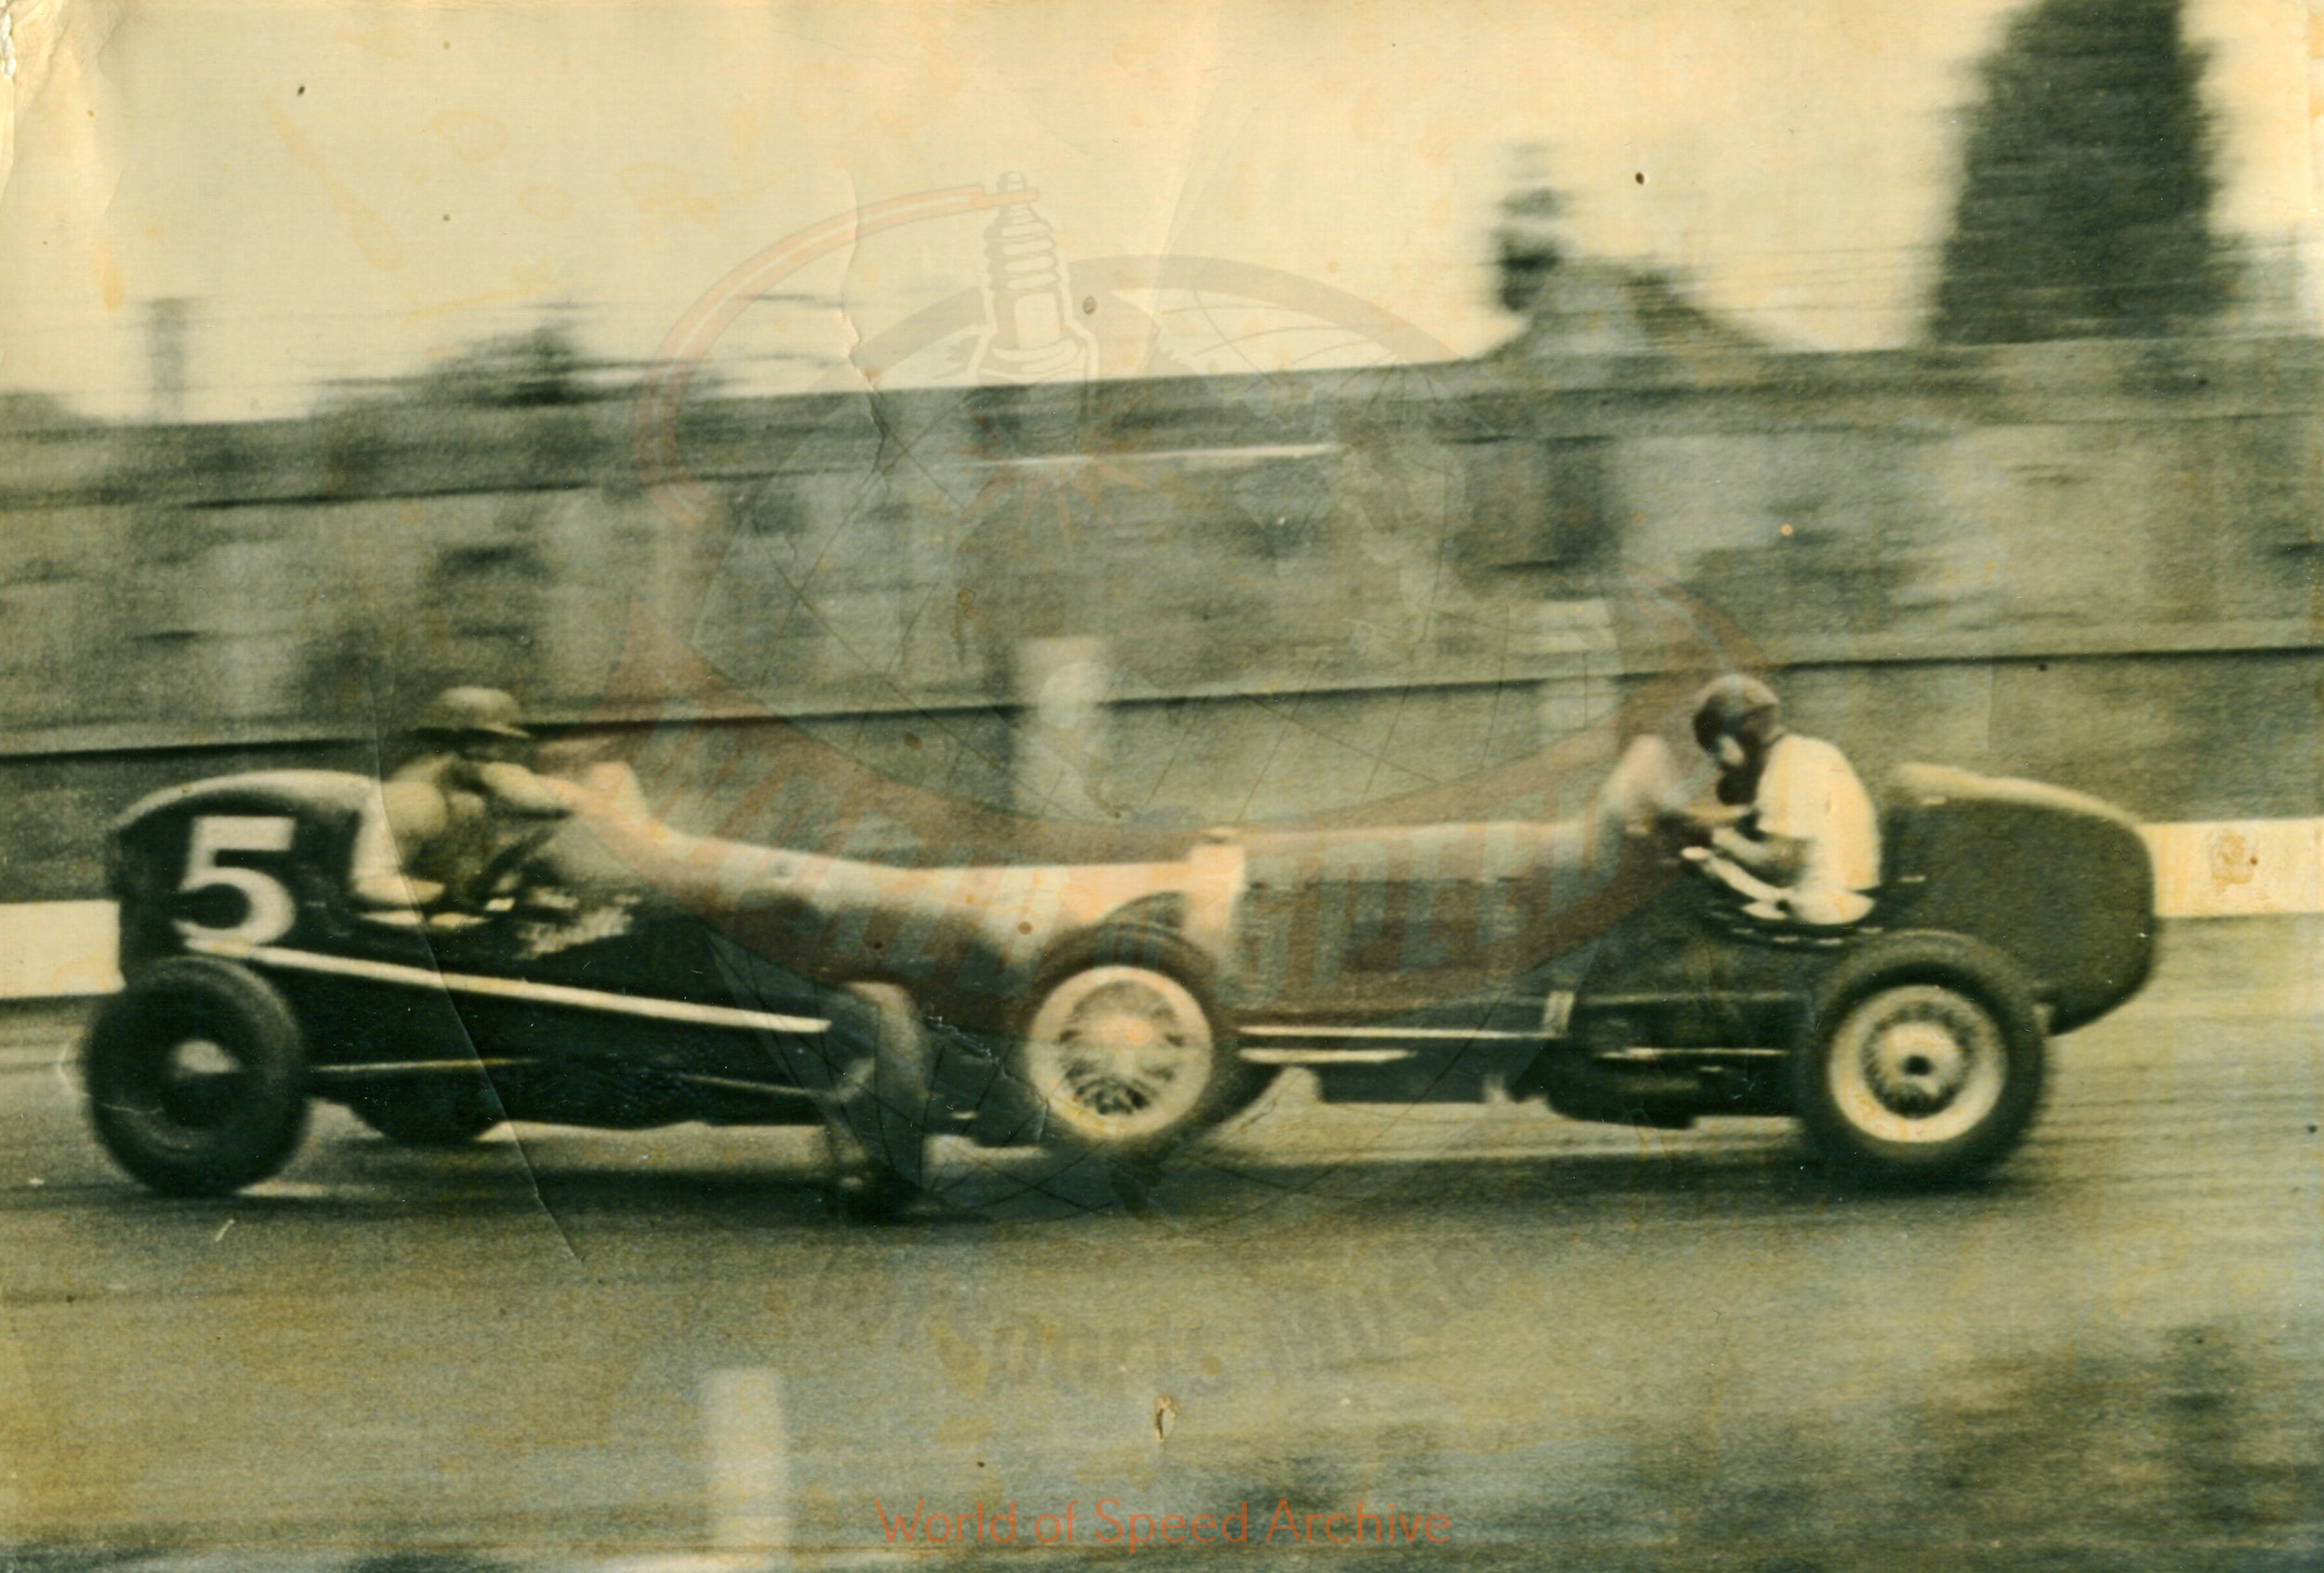 Hildick Photo Collection WOS#5072, BH027  Received submission:  #5 Marvin Cox, #46 Gordy Youngstrom (Scovell's car); 1947 Portland Speedway